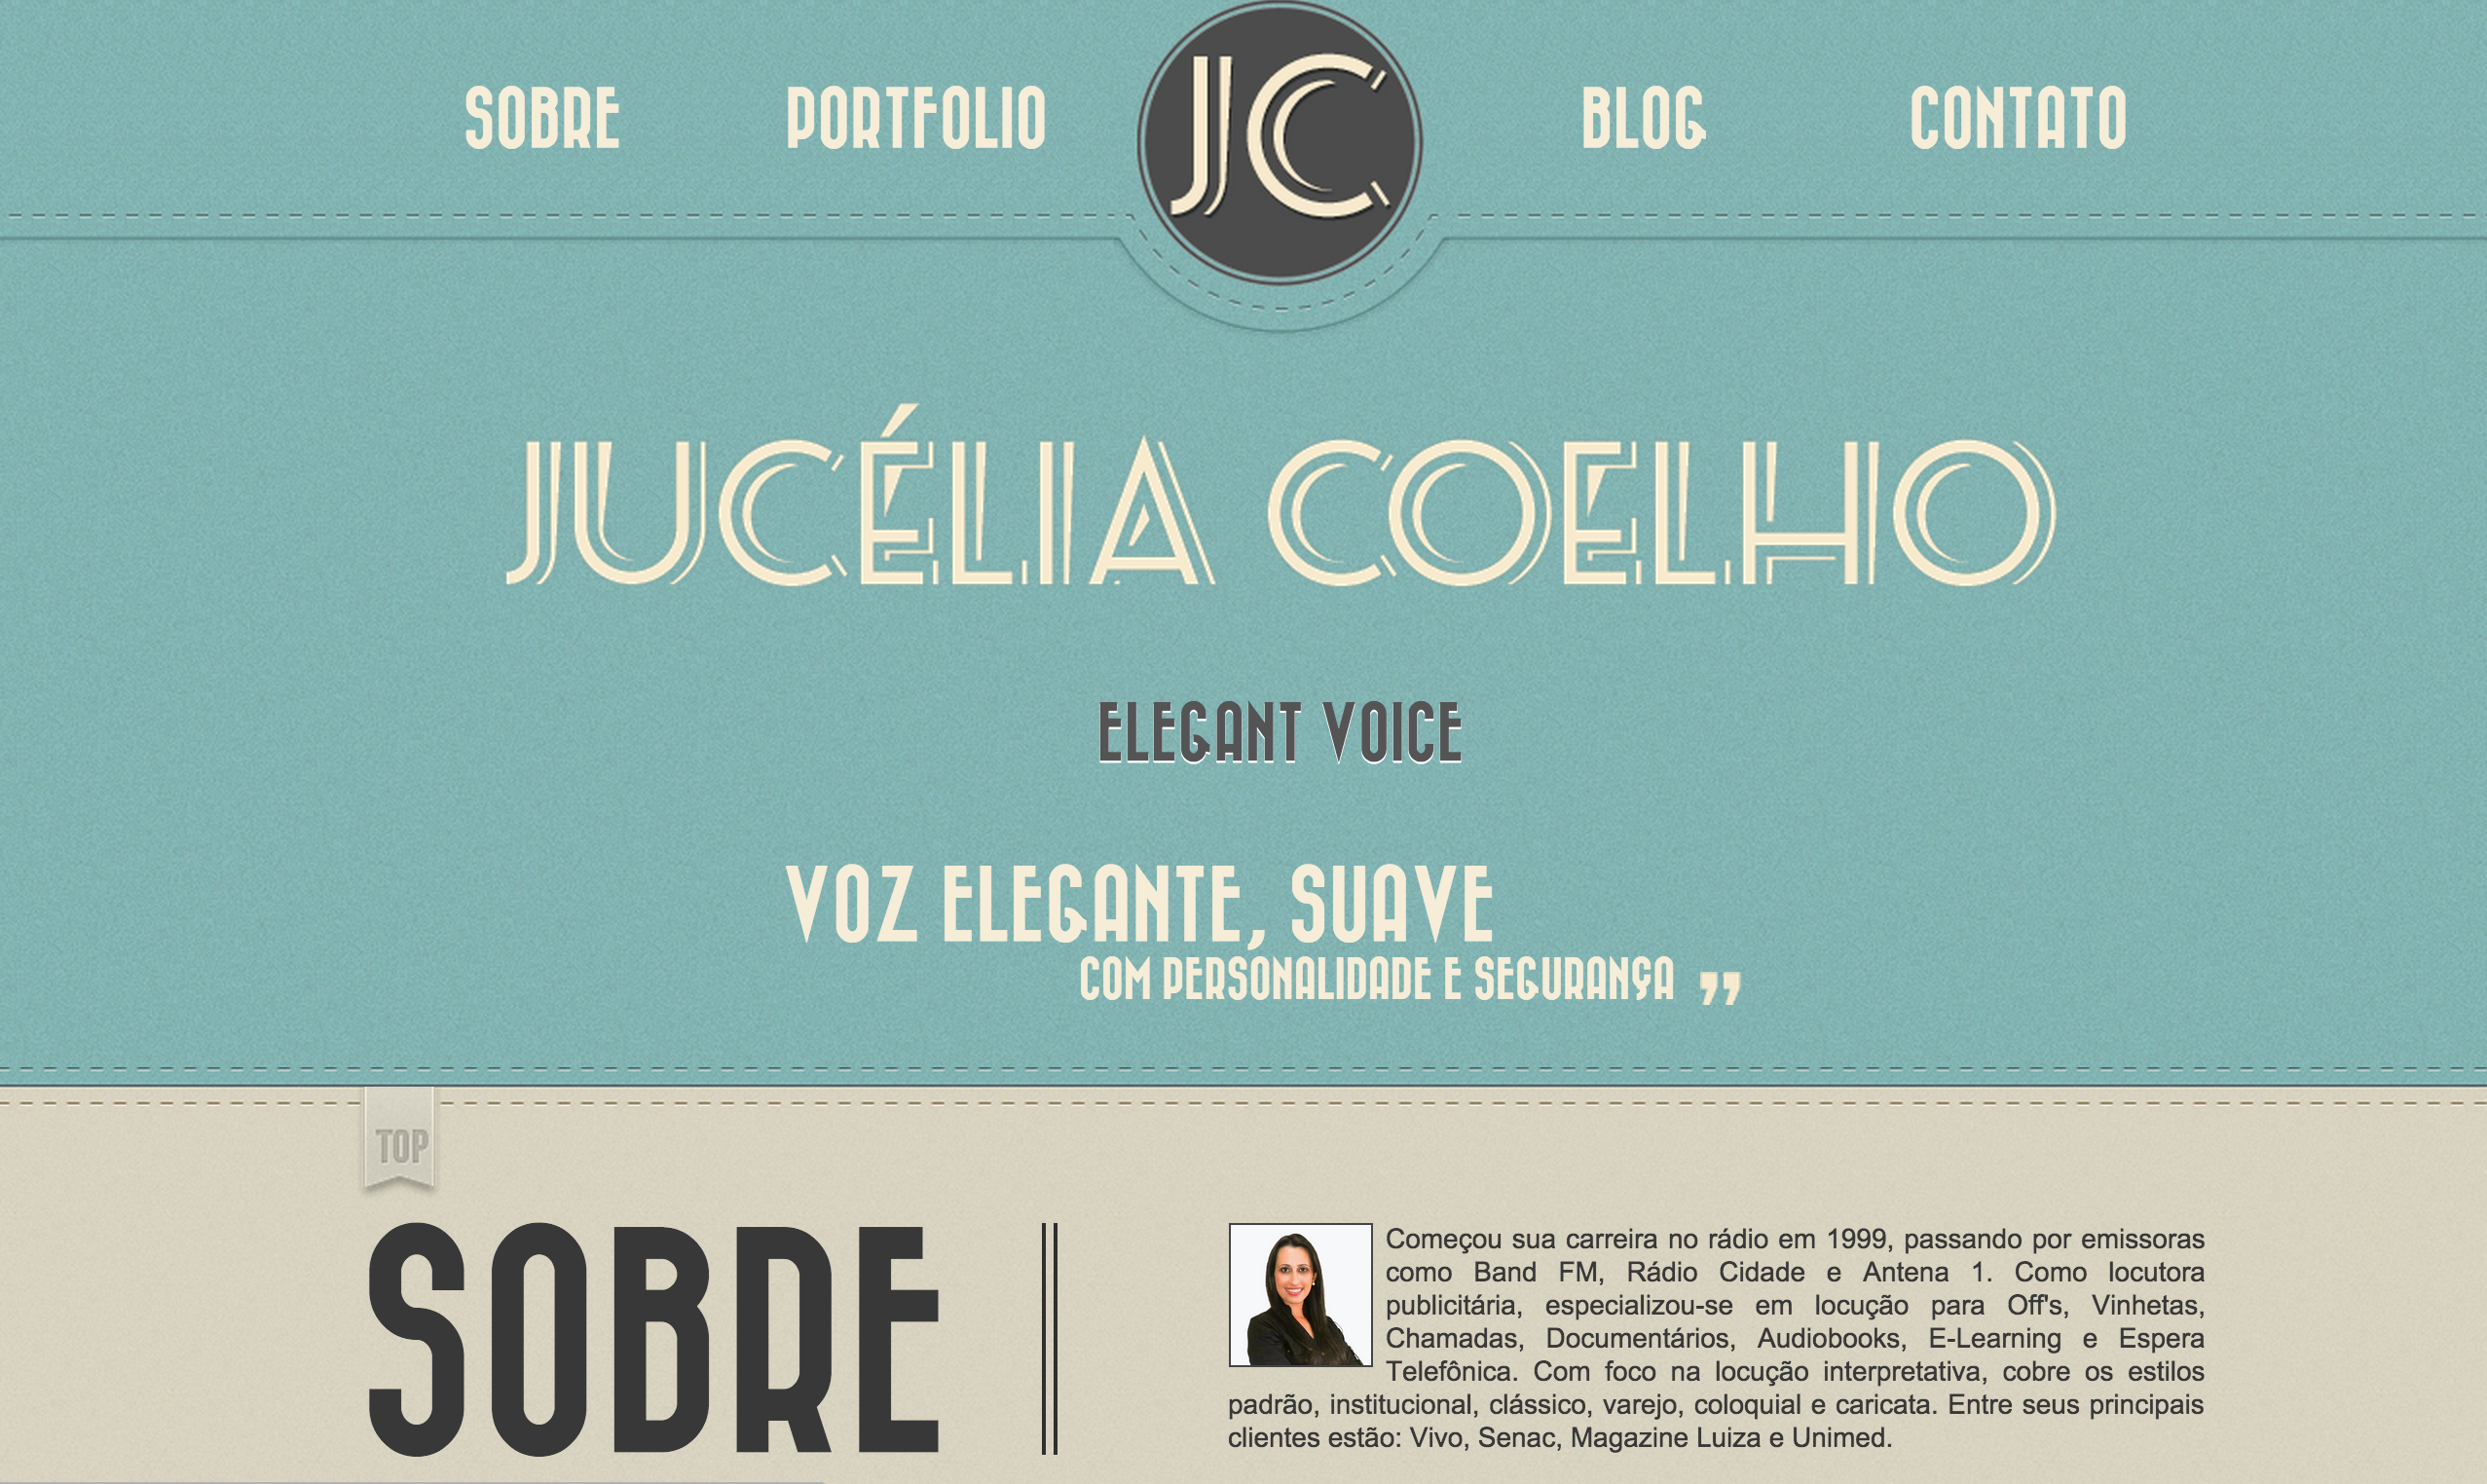 Website - Jucélia Coelho - Elegant Voice